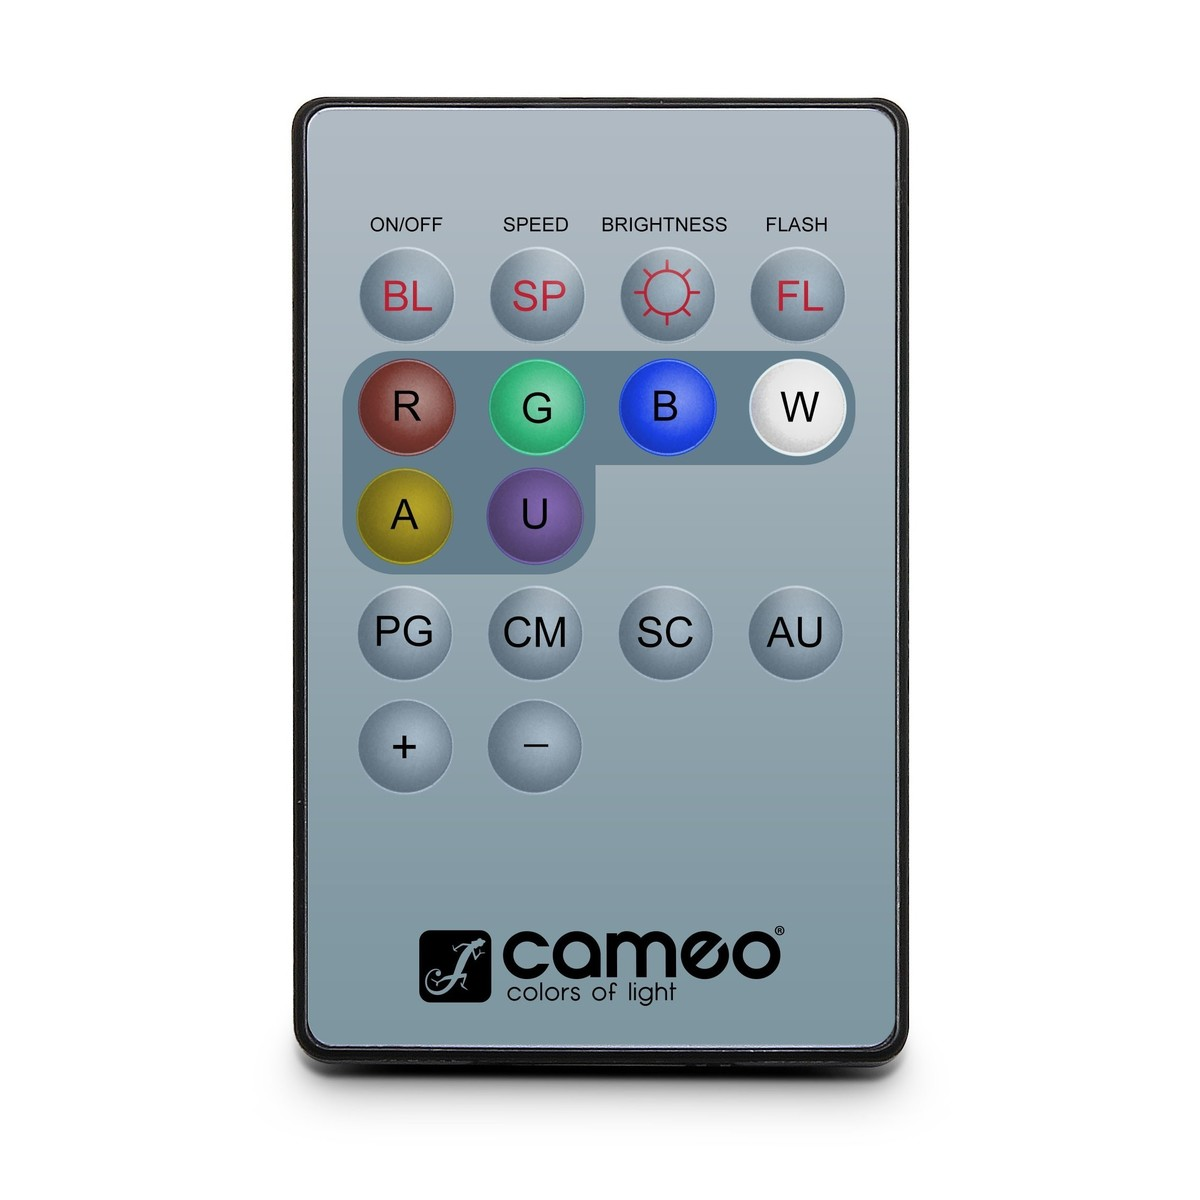 Cameo Q Spot 15 Rgbw Spotlight White At Gear4music Remote Light Wiring Diagram Loading Zoom